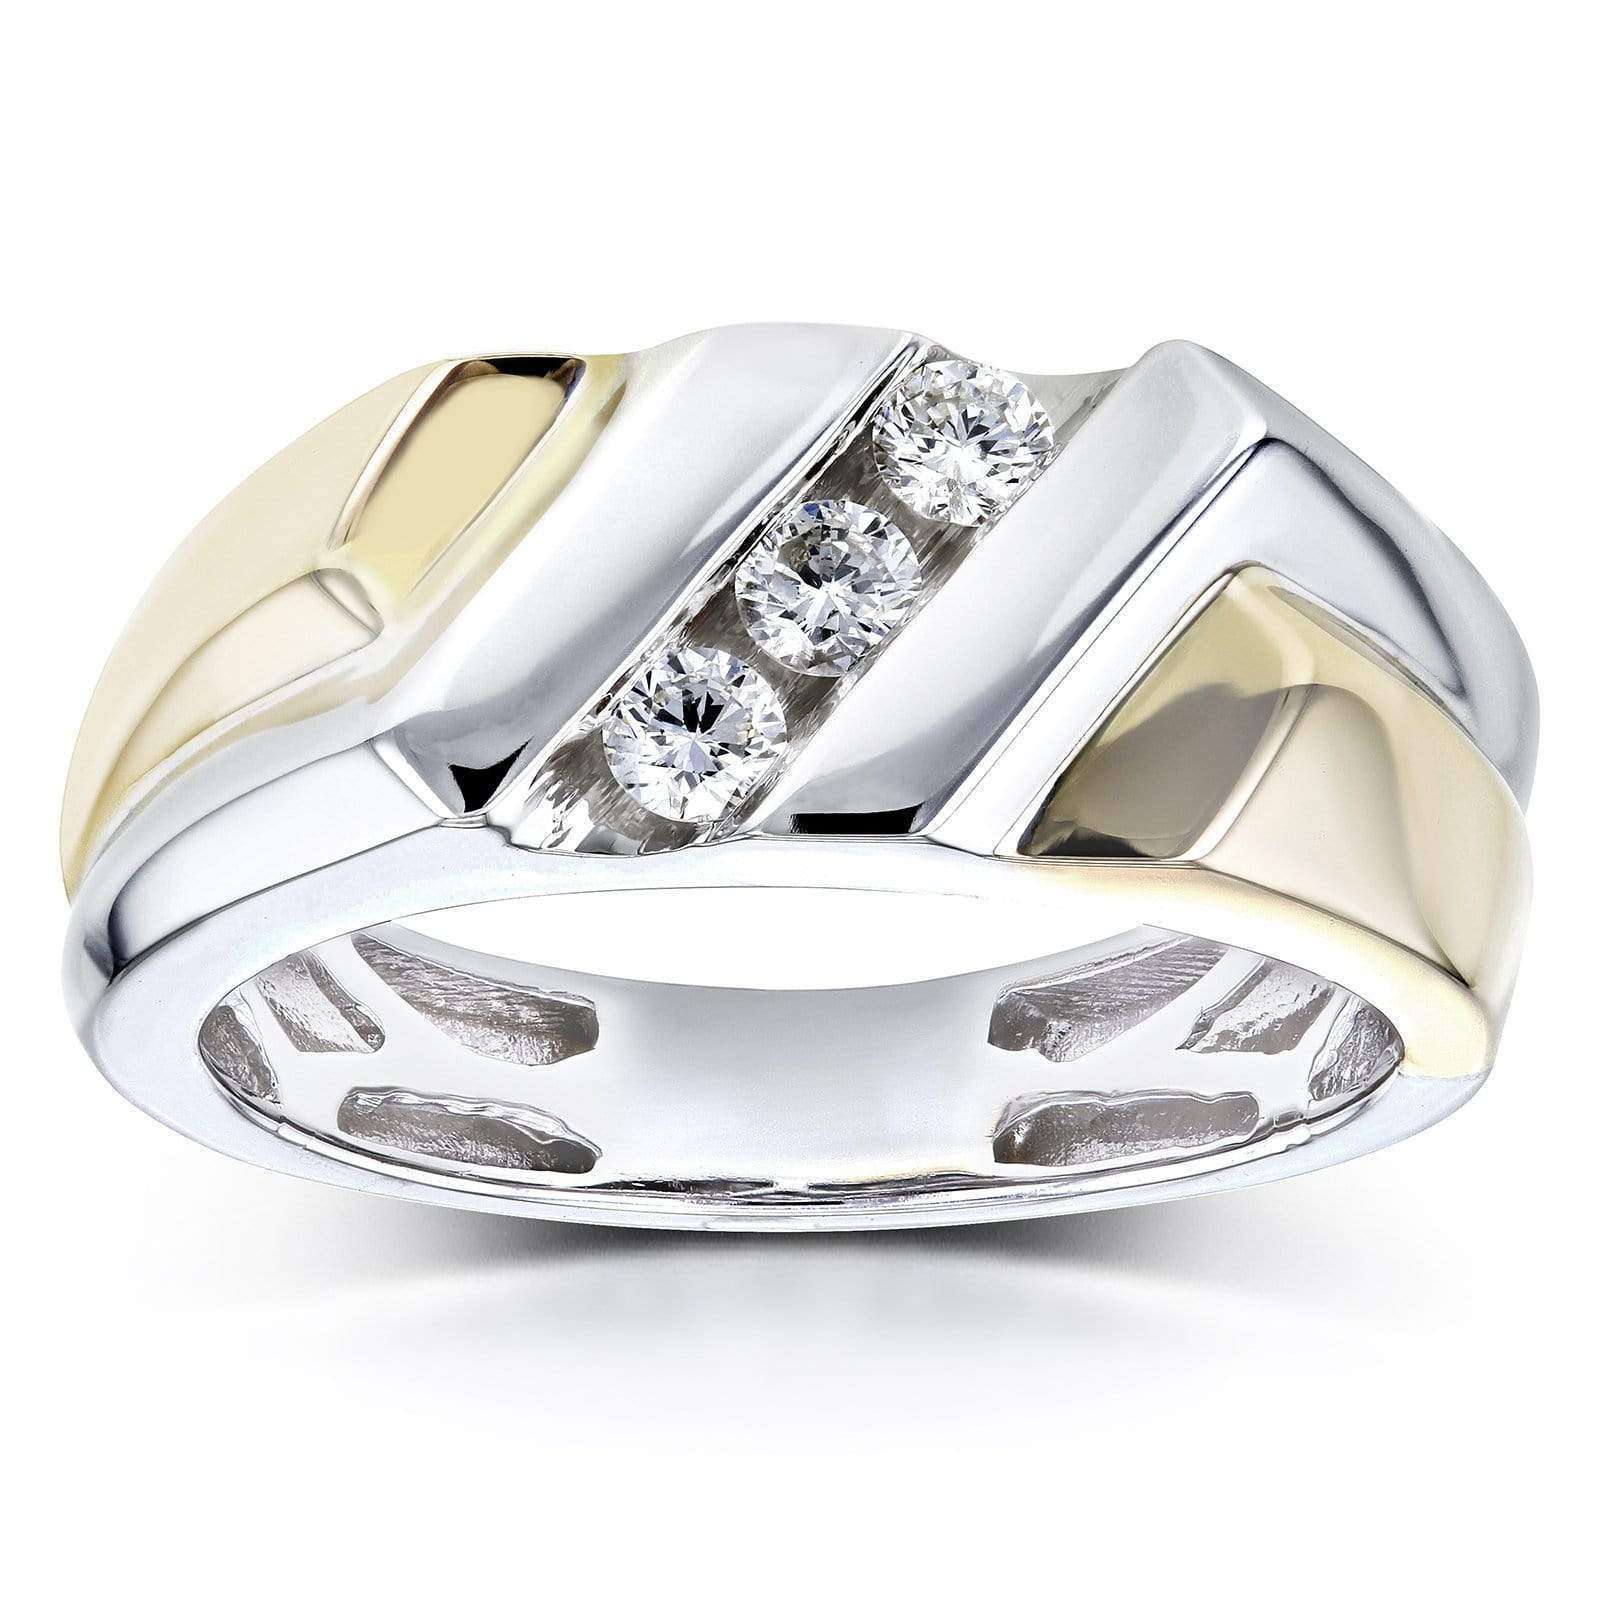 Compare Mens Ring Diagonal Channel Round Diamonds 1/4 Carat (ctw) in 10k Two Tone Gold - 10